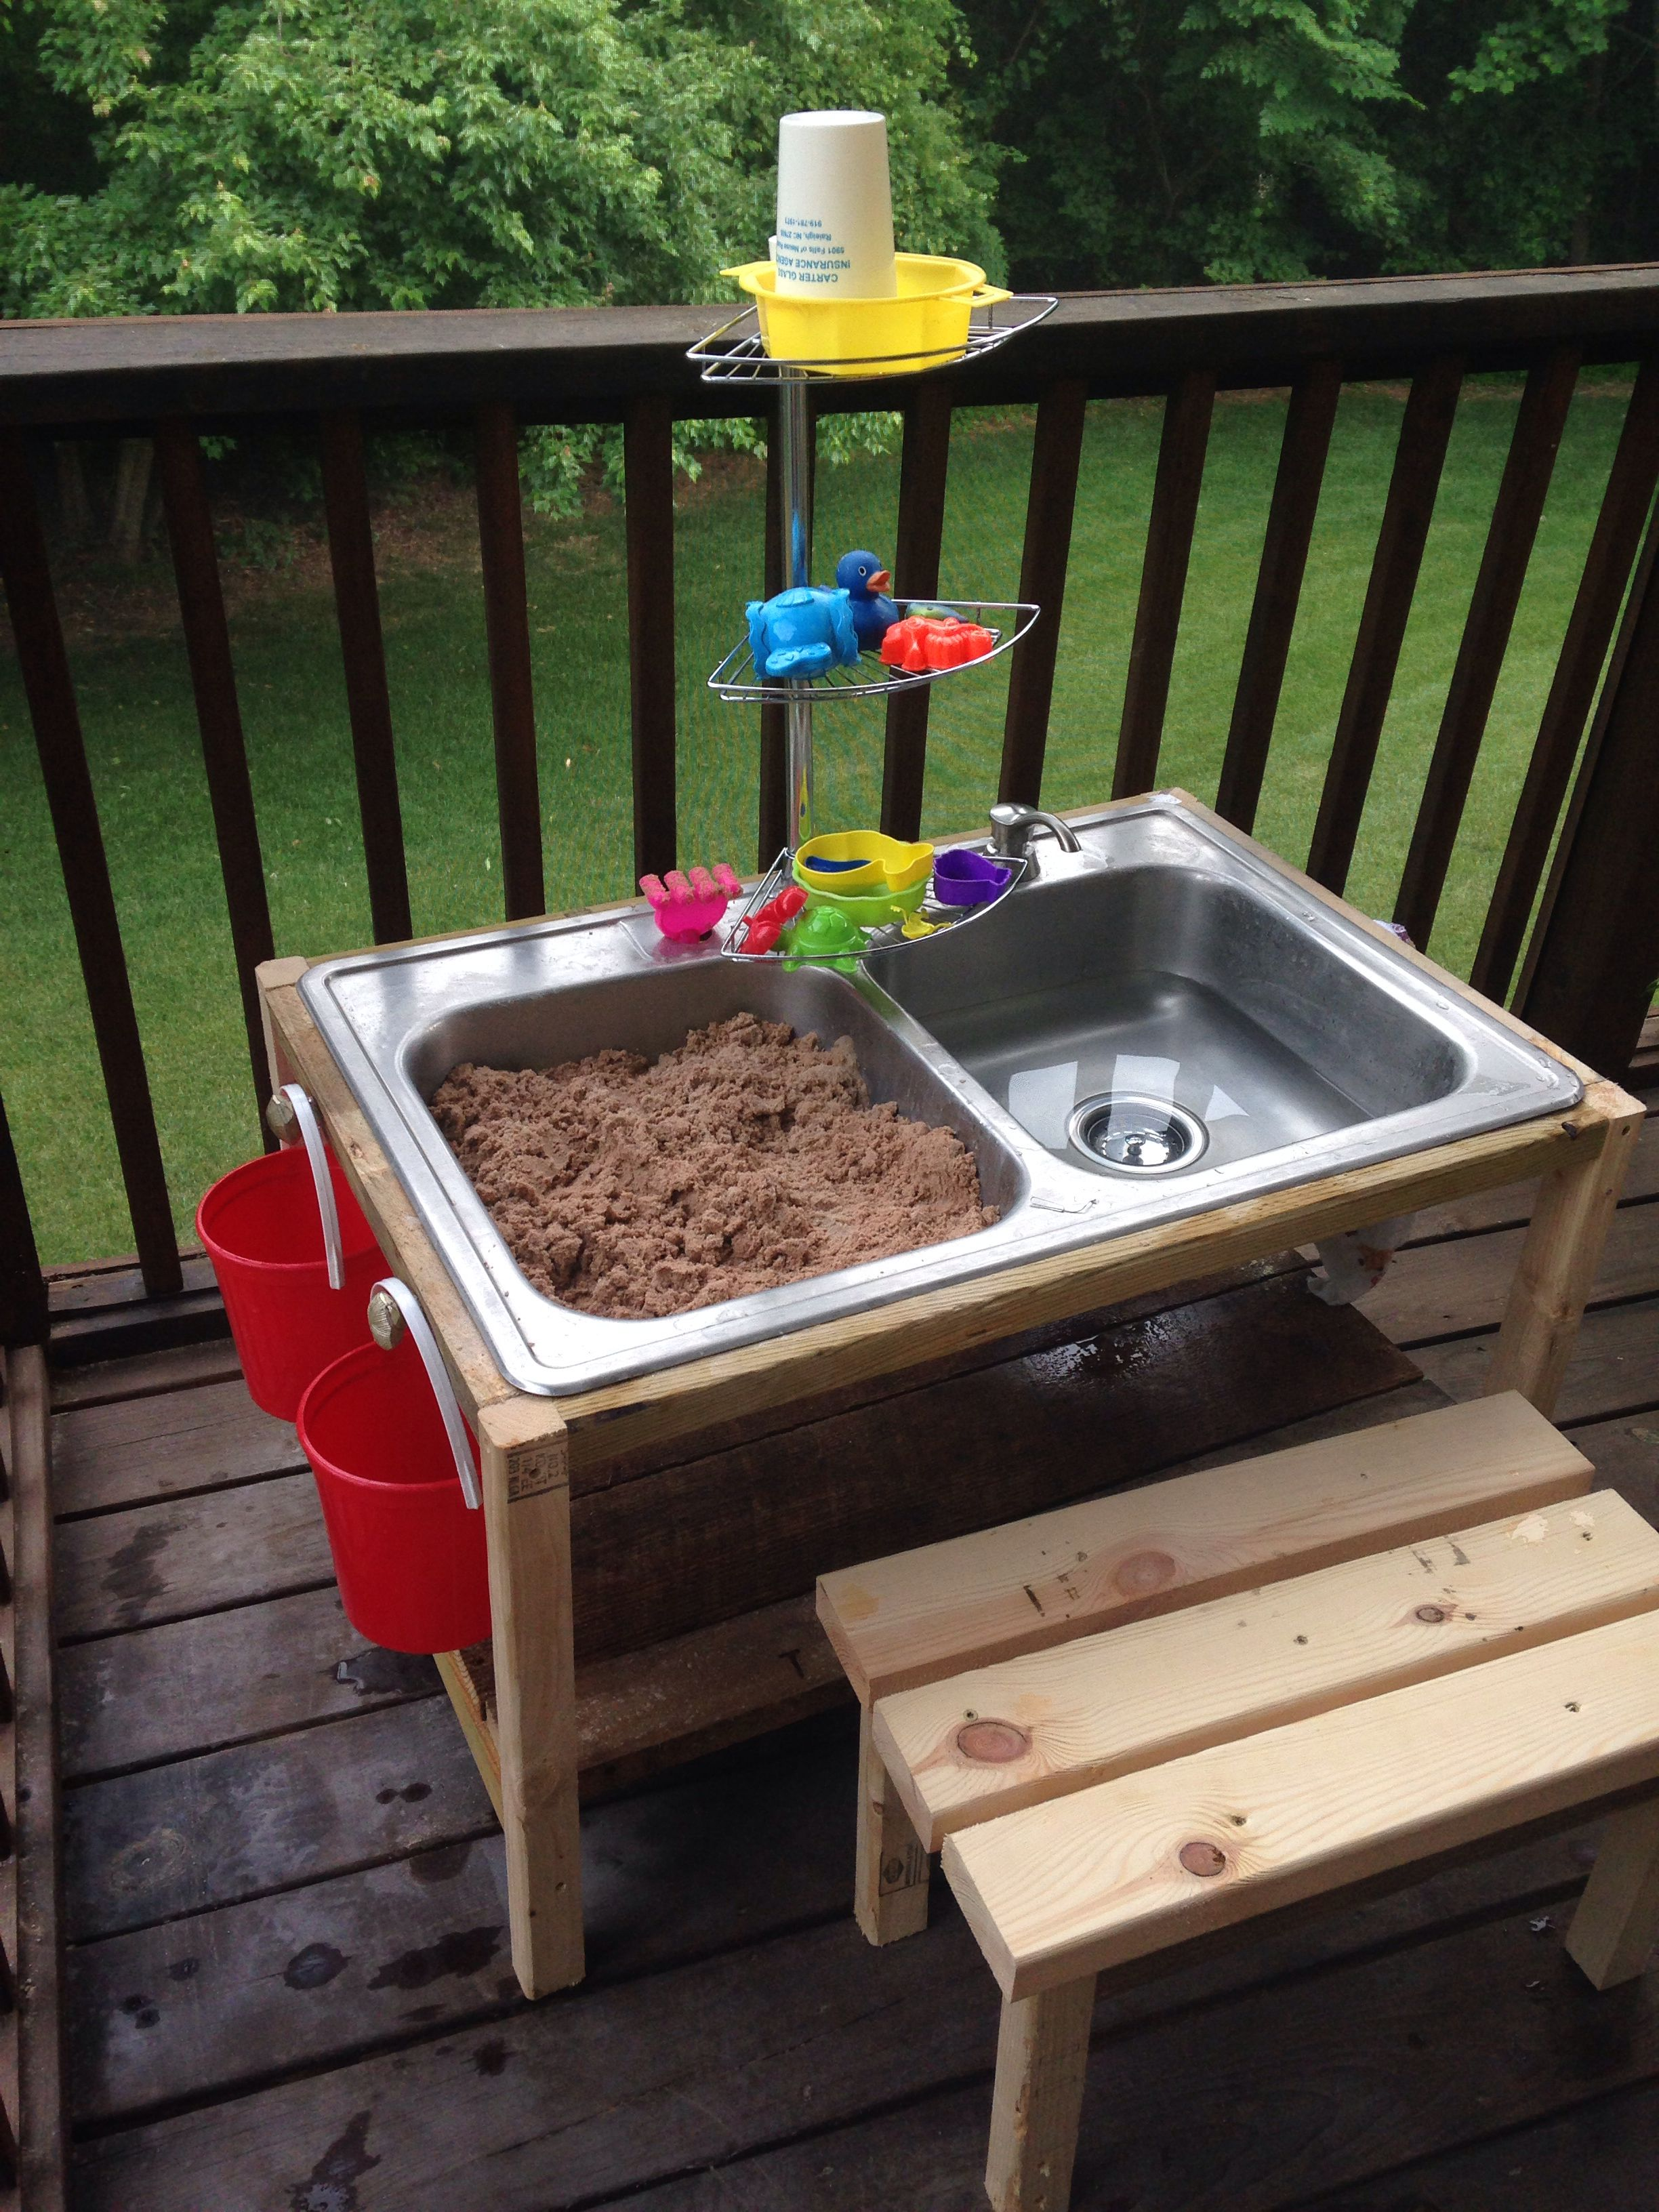 DIY sand and water table made from a thrift store kitchen sink, palette wood and leftover wood from other projects. Add knobs to the side and build a bench to go with it! Super cheap and fun project!